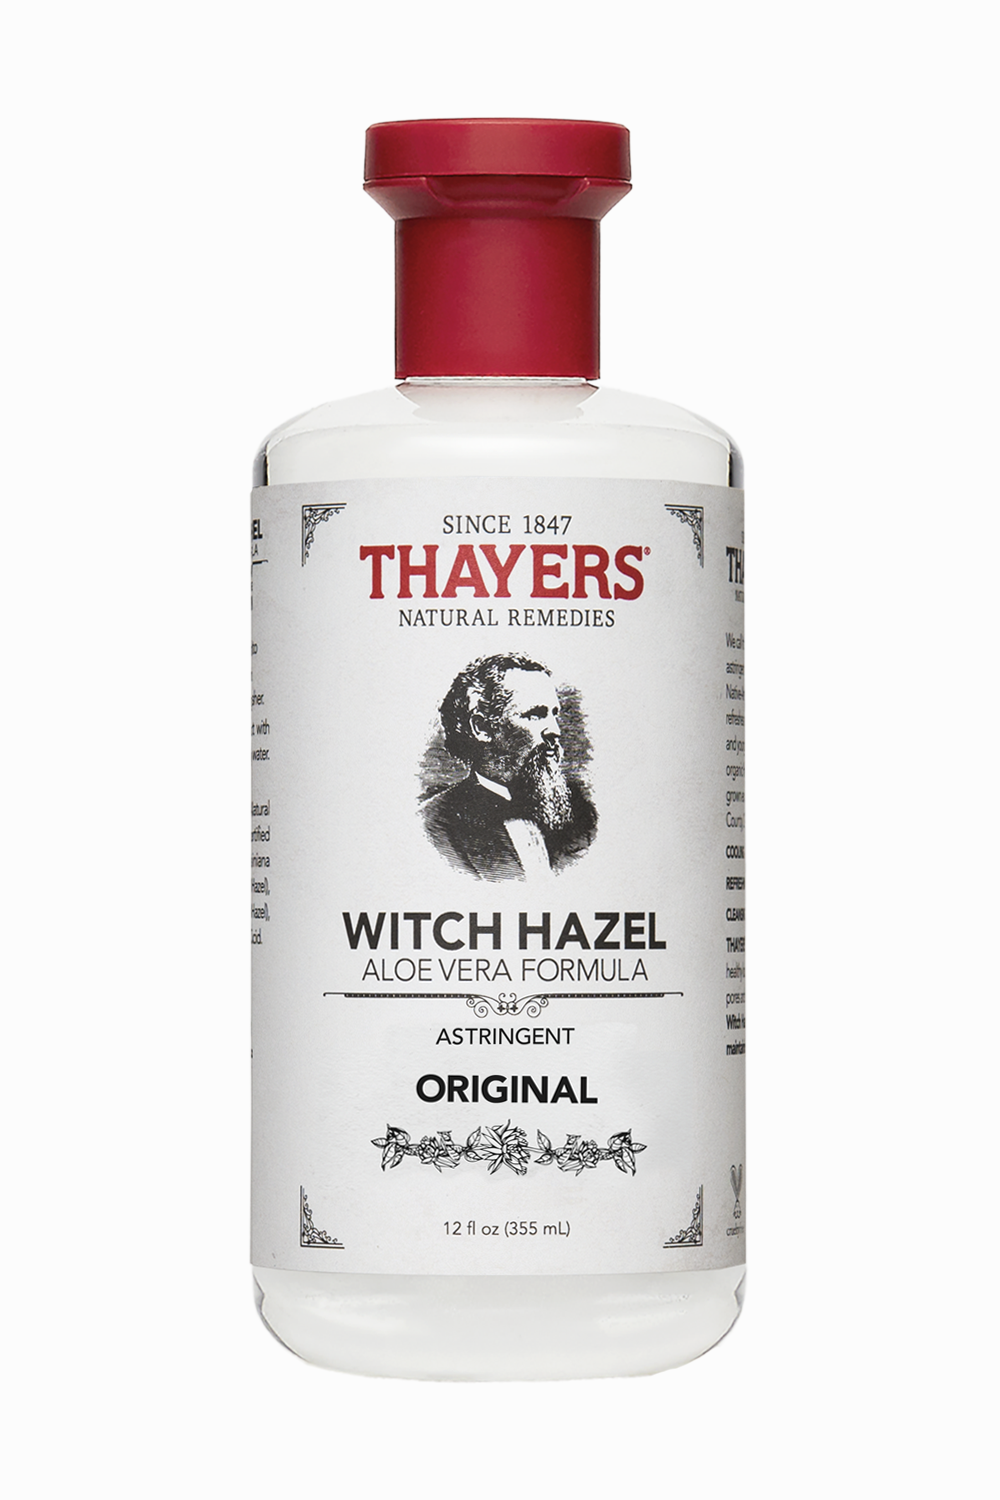 Witch Hazel - Witch Hazel is a topical astringent that comes from the bark and leaves of Hamamelis virginiana and has been long recognized by Native Americans for its skin irritation healing effects. This popular herbal product is now known as a natural cleanser and toner that Zendaya says she uses as the first step in her skin care routine.